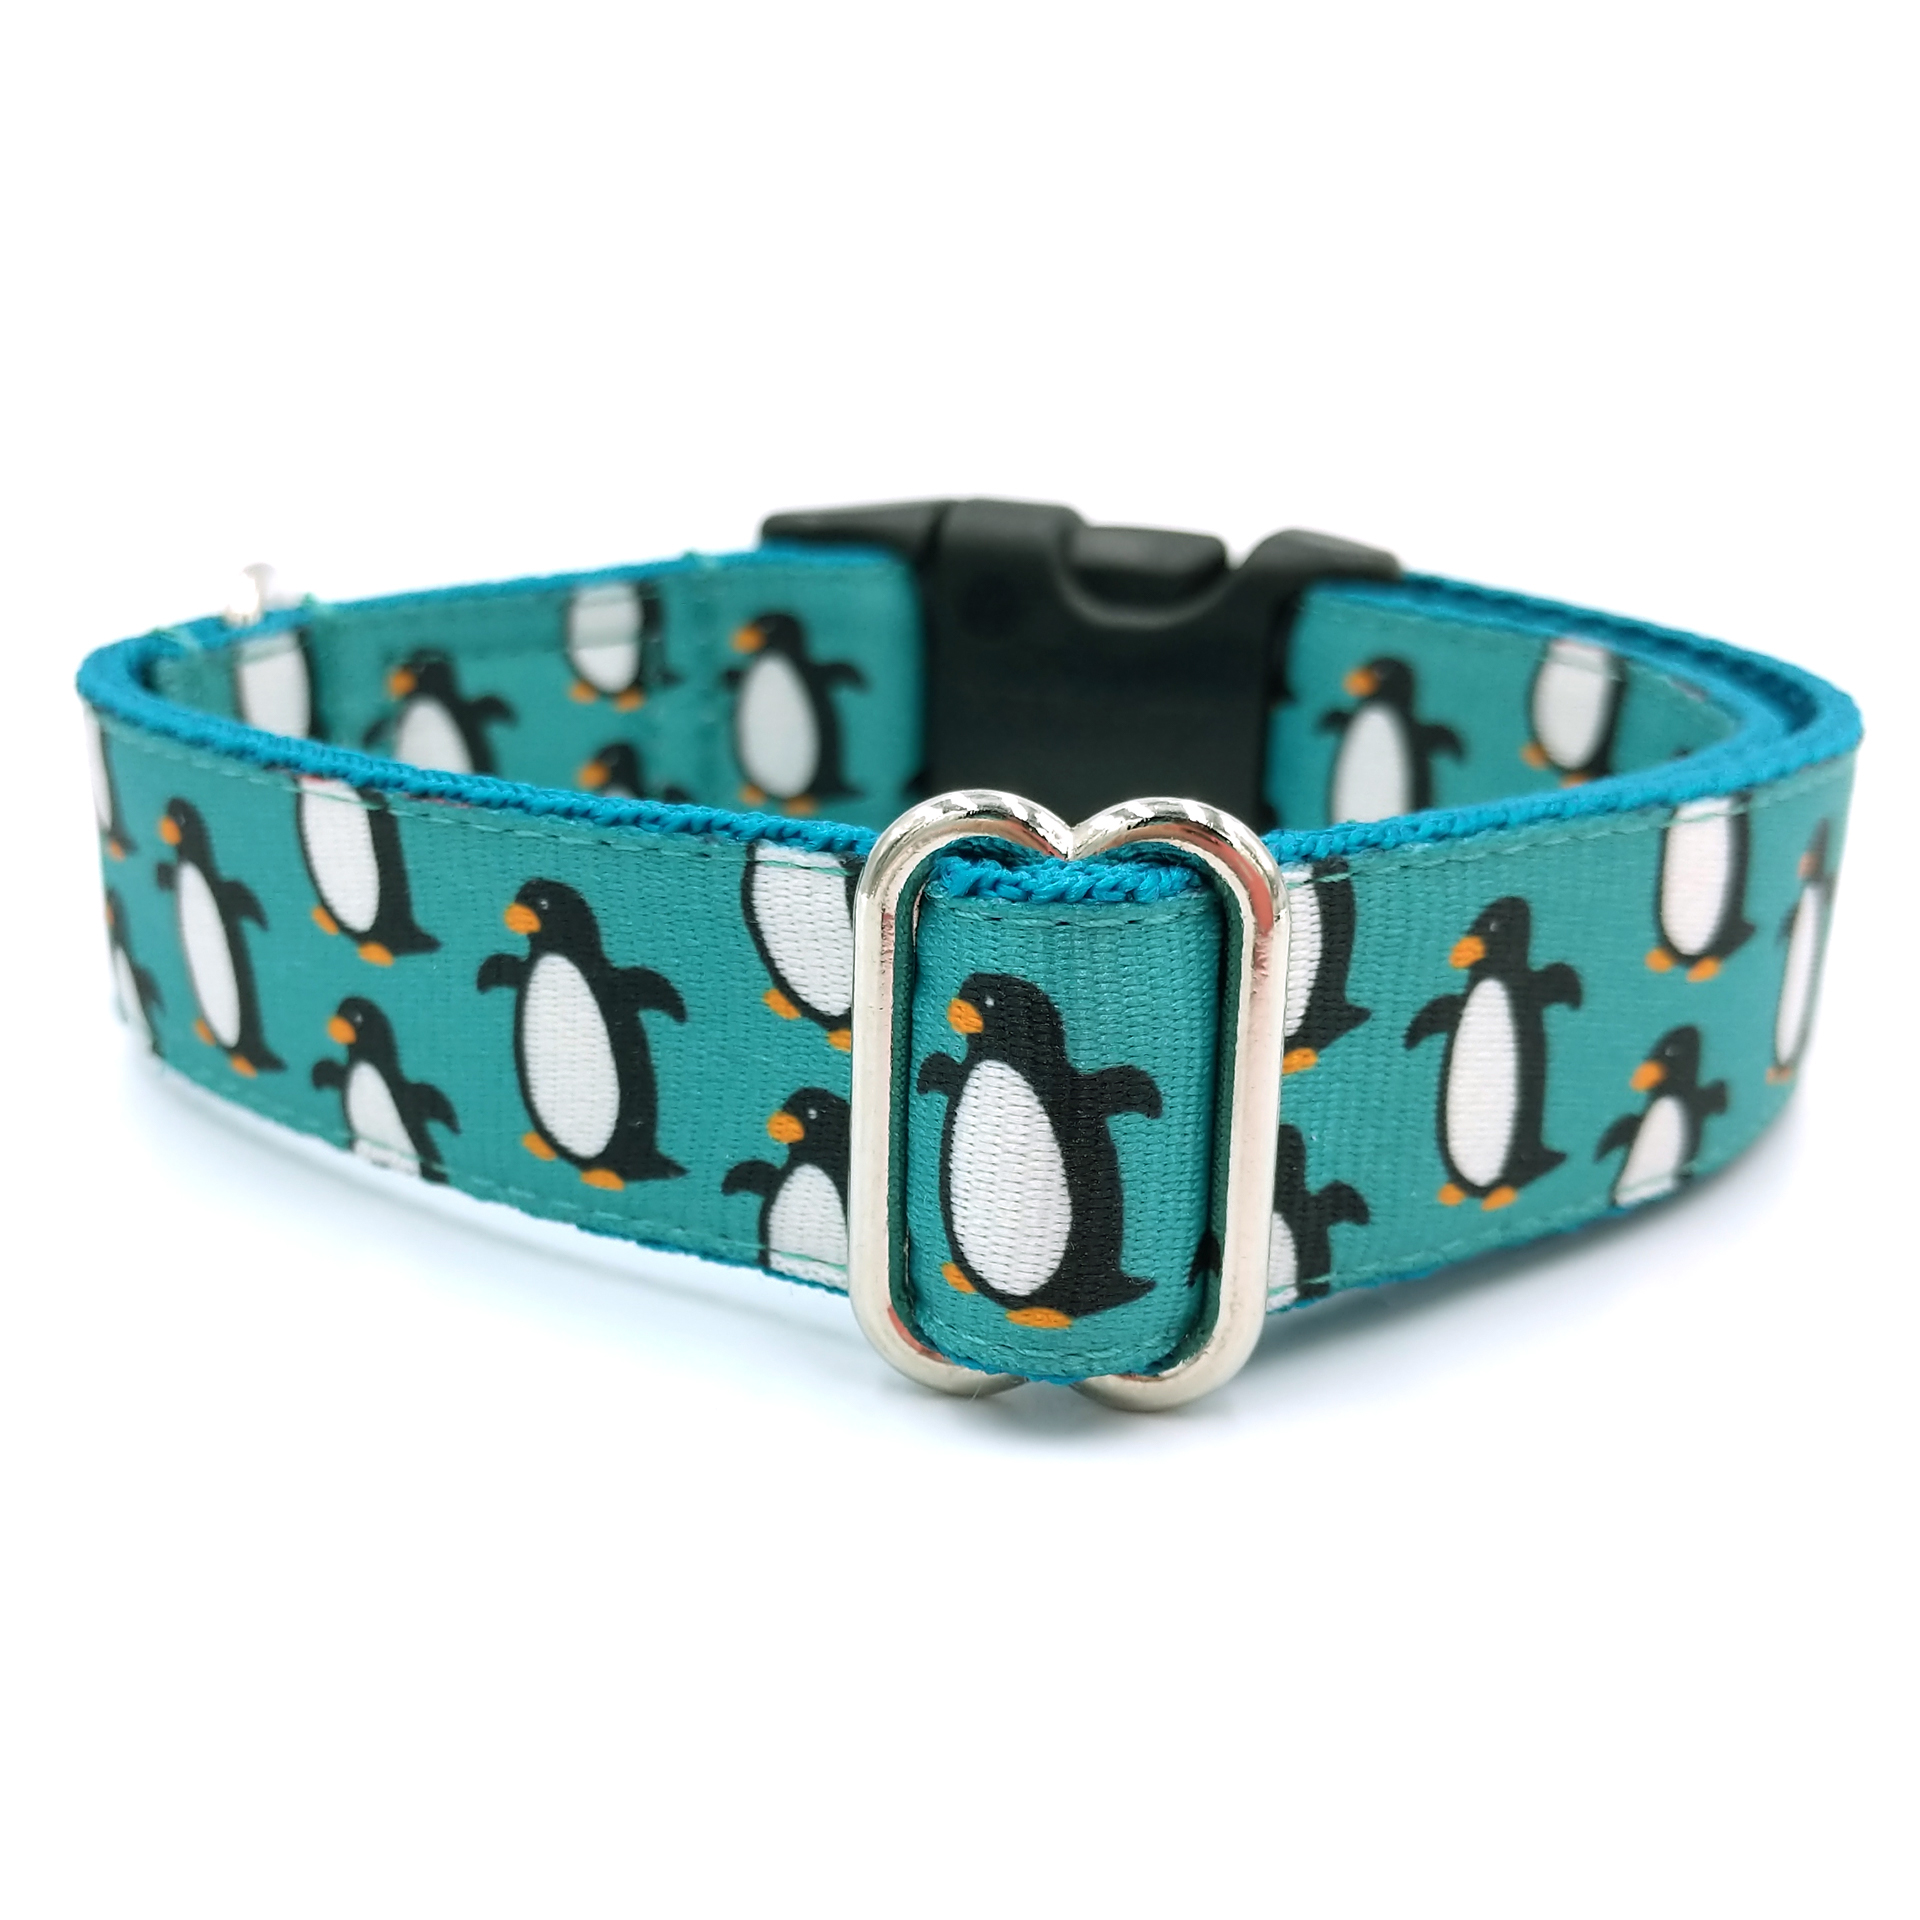 Penguin dog collar